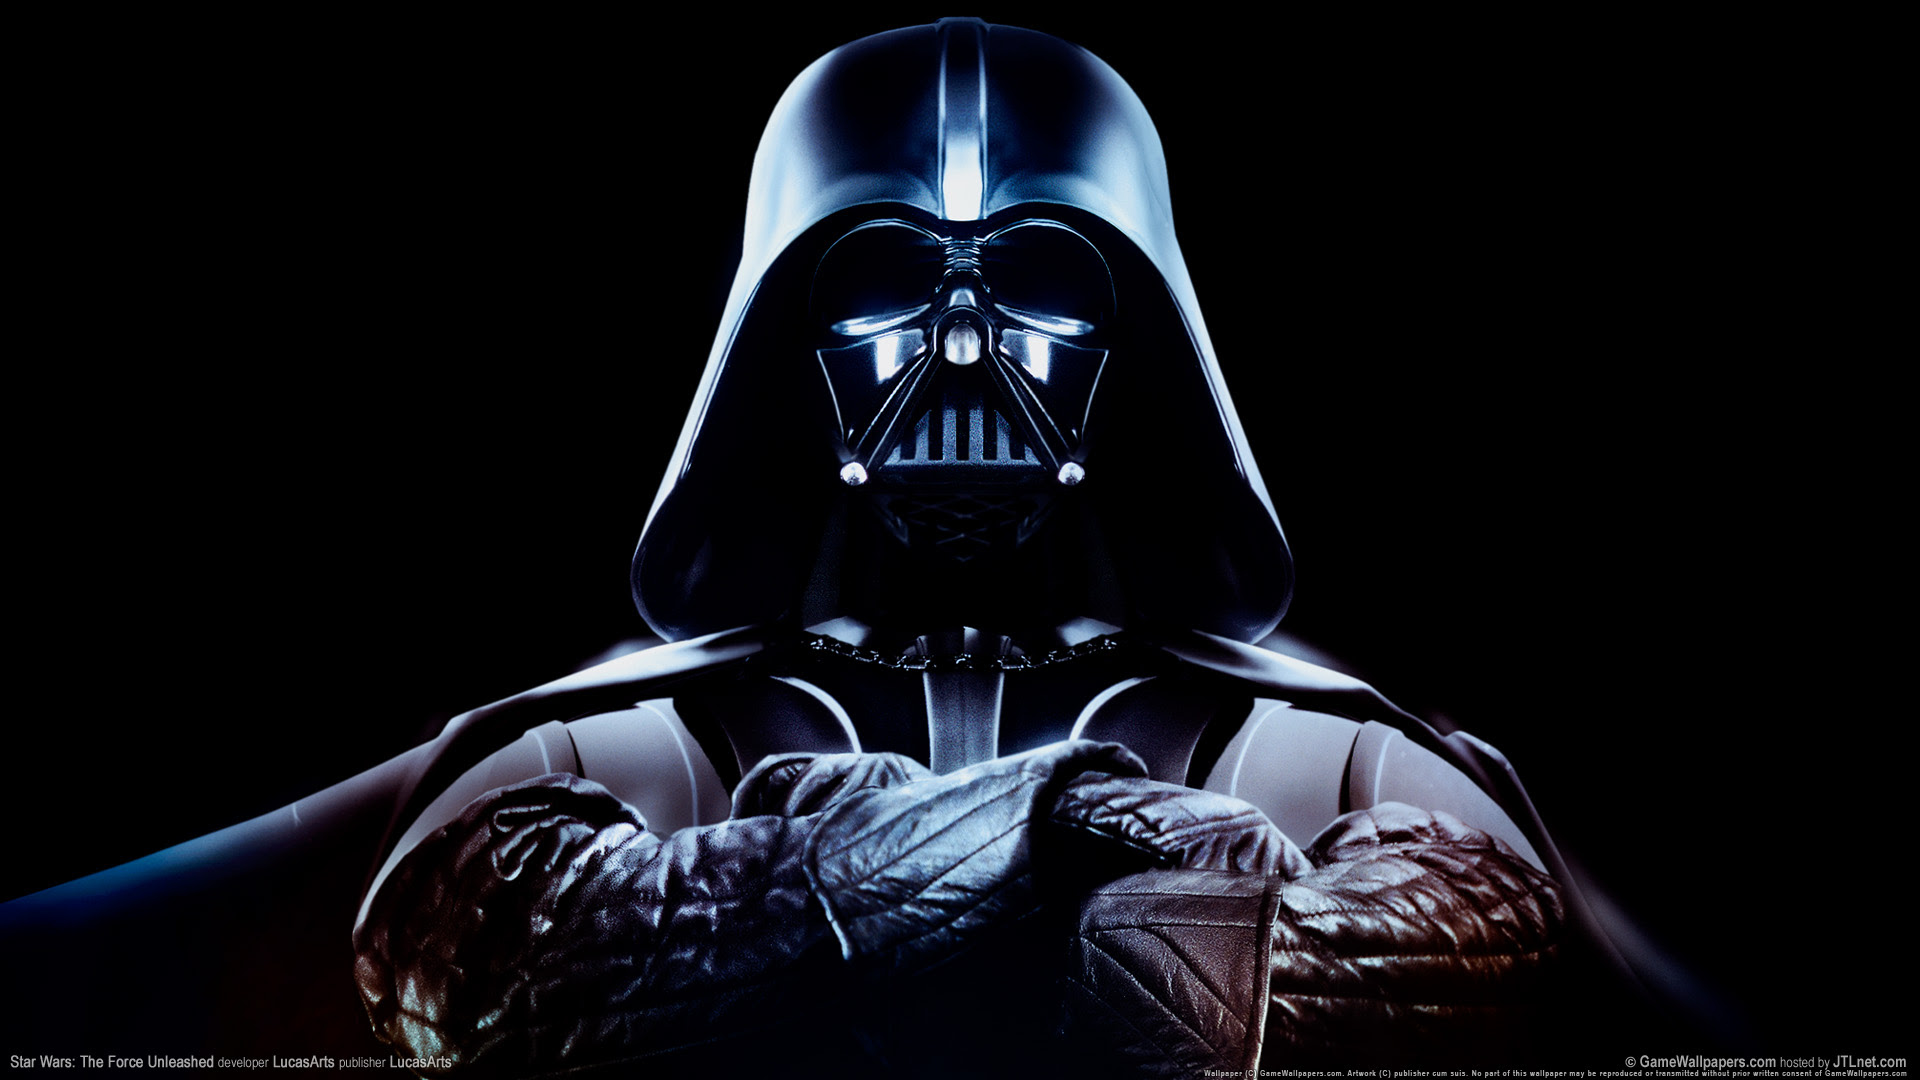 Star Wars Pulp Fiction Wallpaper Free Stock Wallpapers On